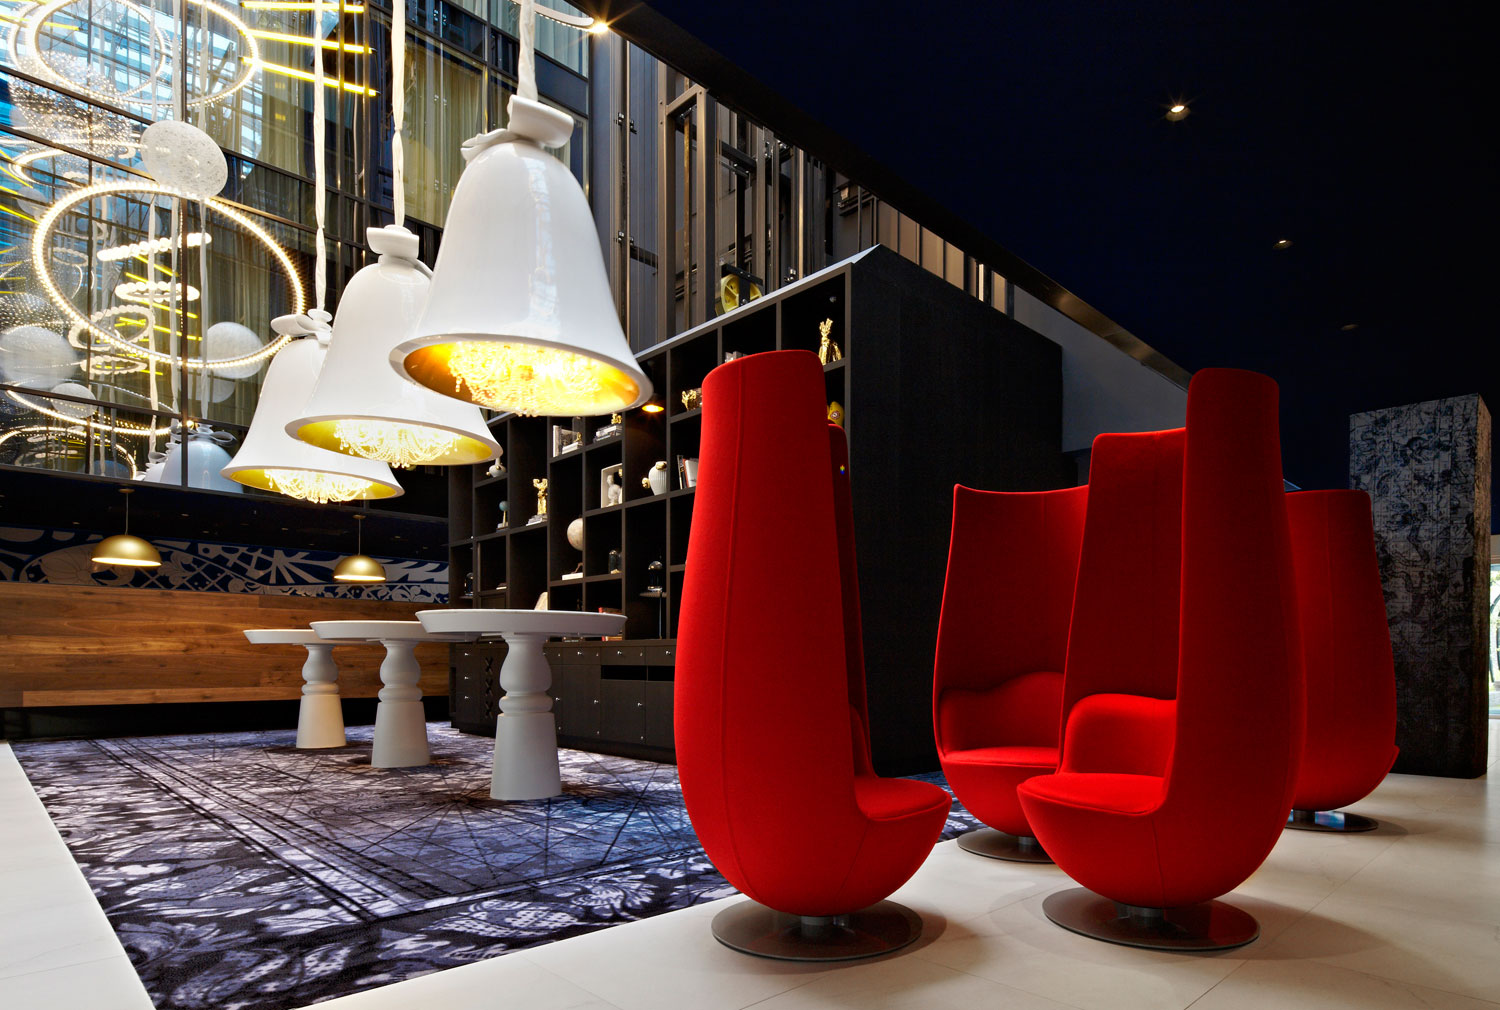 Andaz Amsterdam Hotel by Marcel Wanders (3)